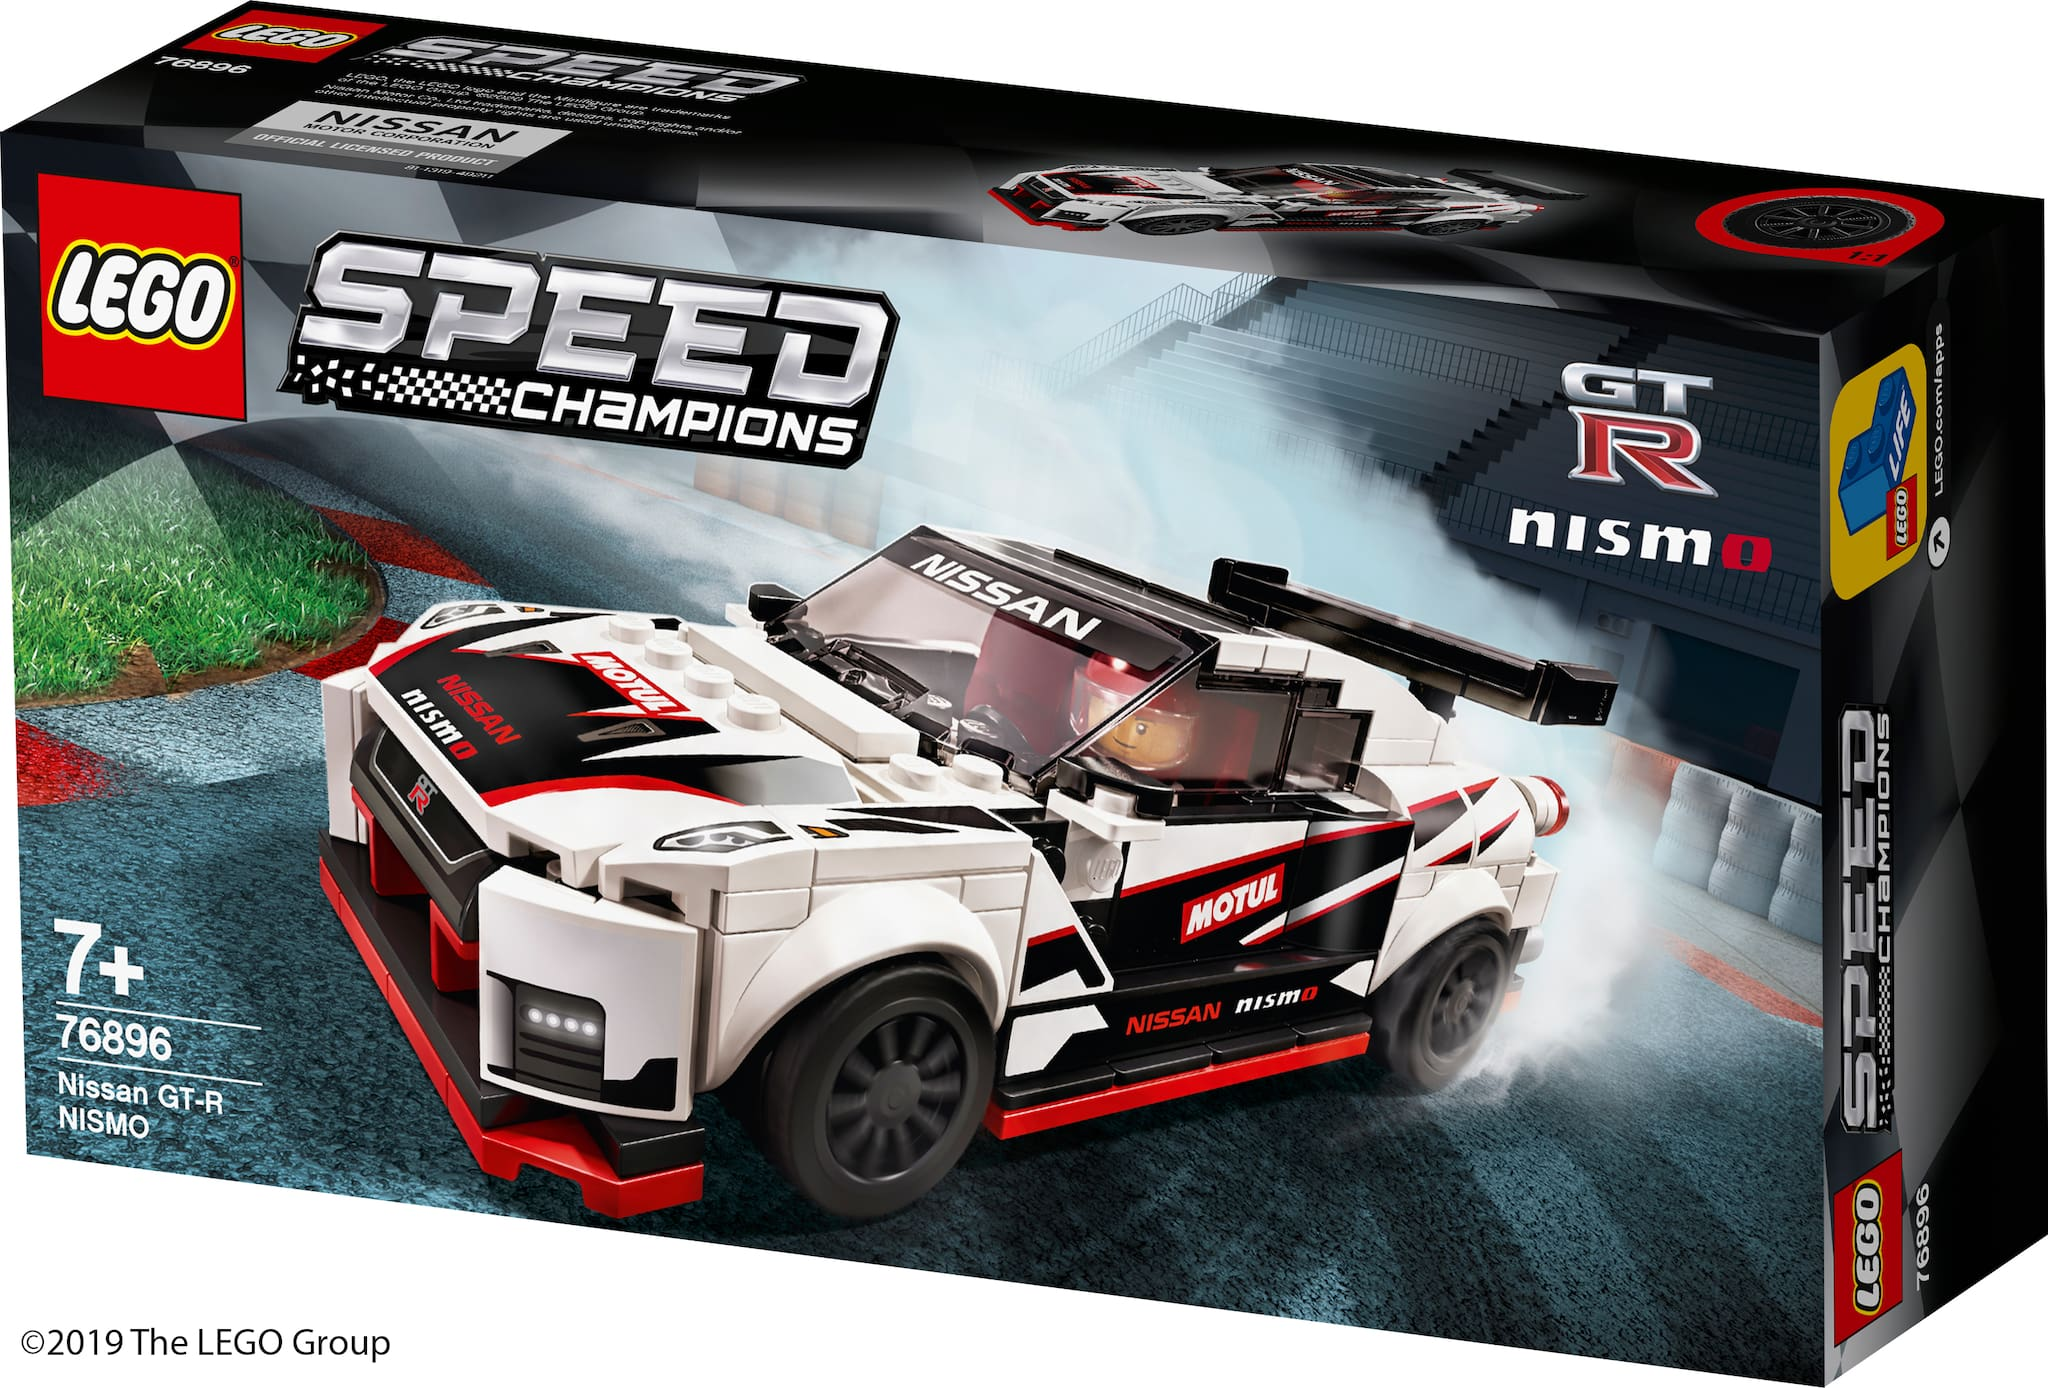 The Nissan GT-R Nismo Now Has a LEGO Version